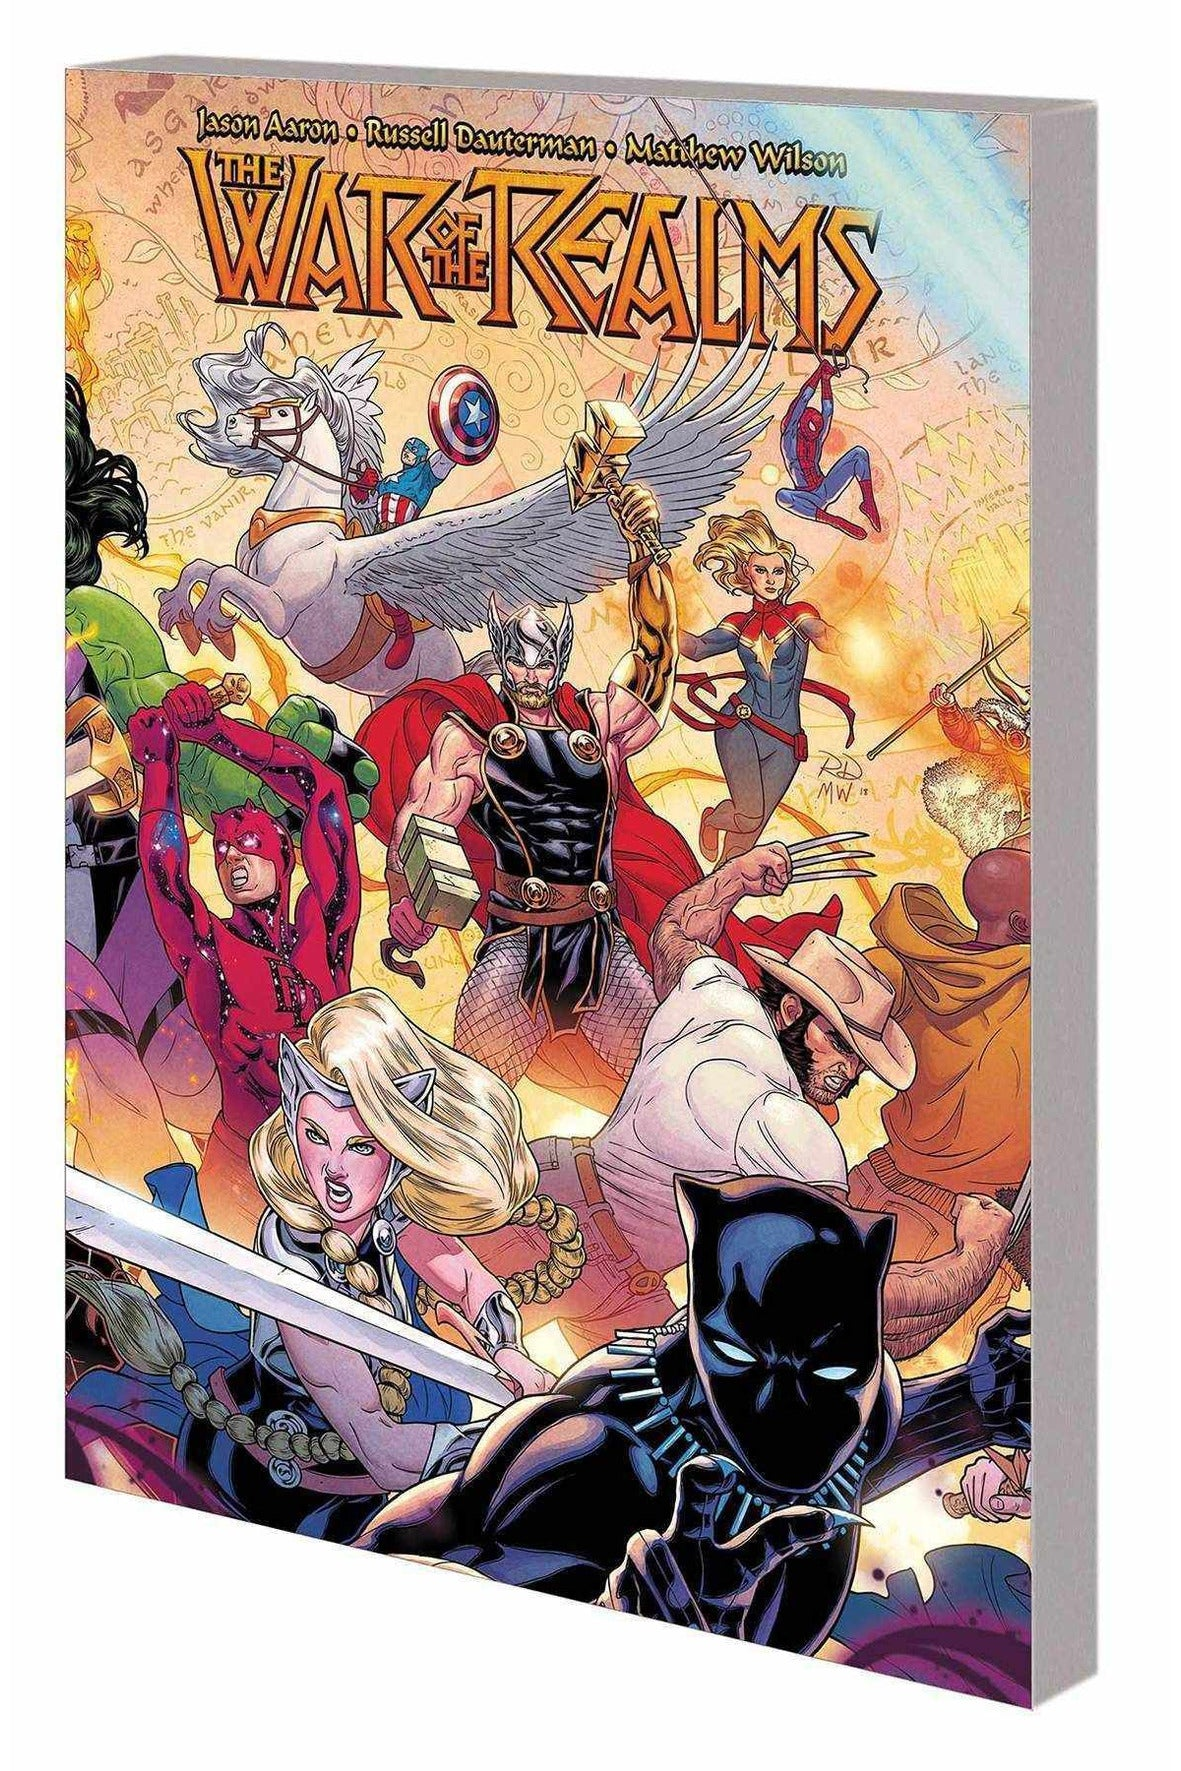 war-of-realms-tp-diamond-9781302914691-thegamersden.com